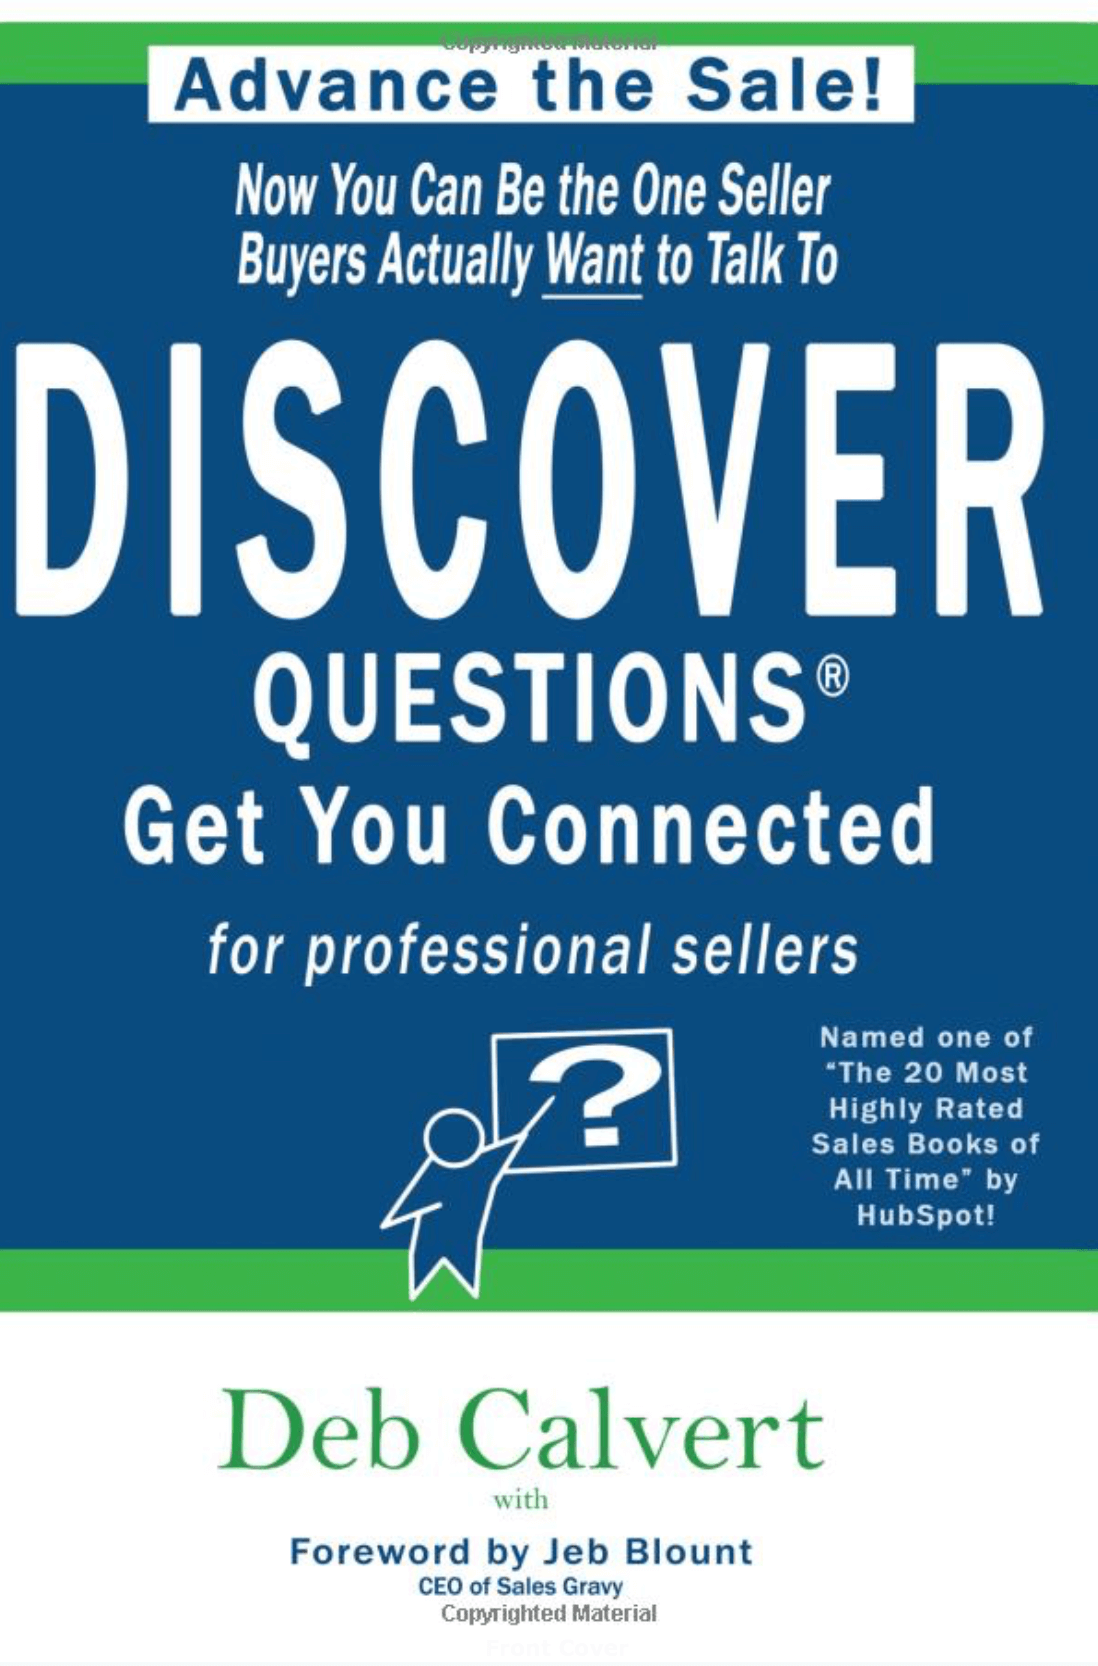 """DISCOVER Questions Get You Connected"" by Deb Calvert and Renee Calvert"